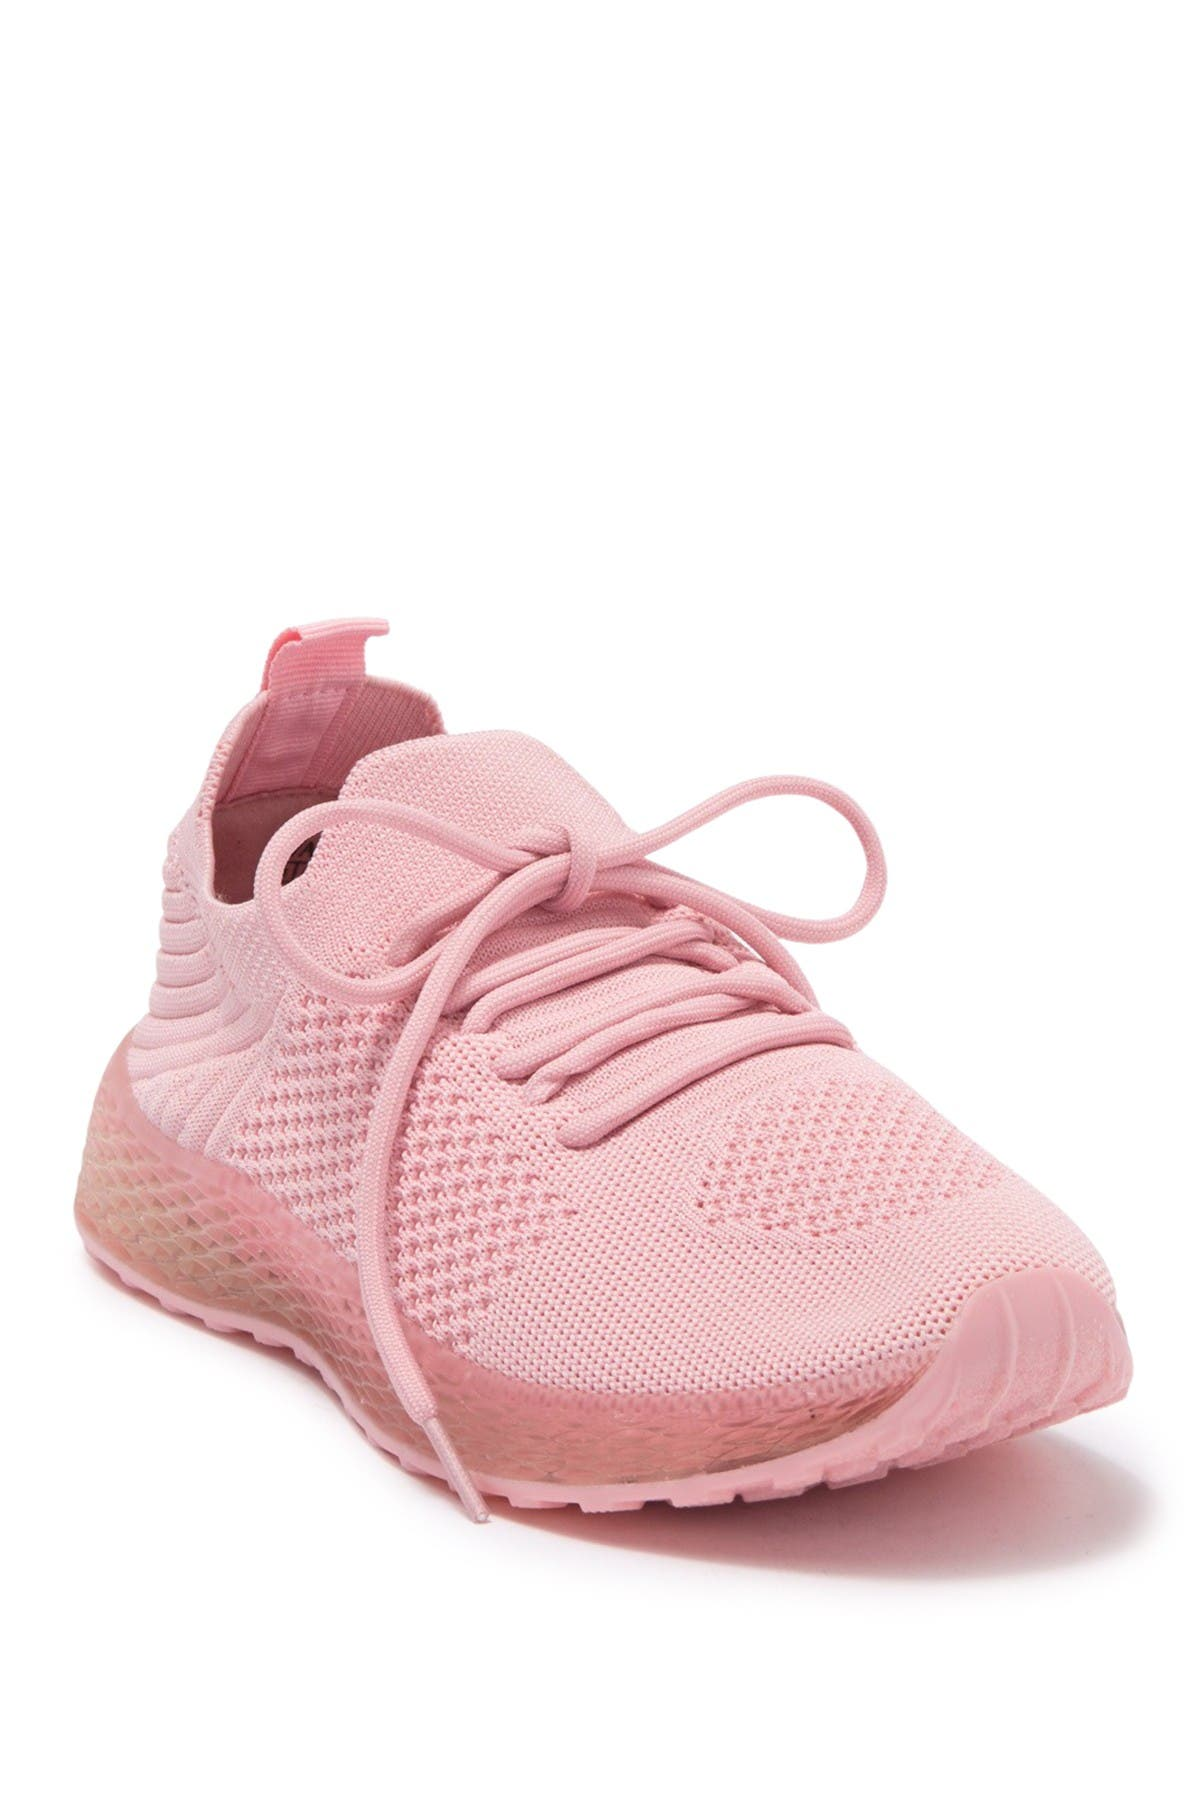 Image of Wanted Knit Lace-Up Sneaker